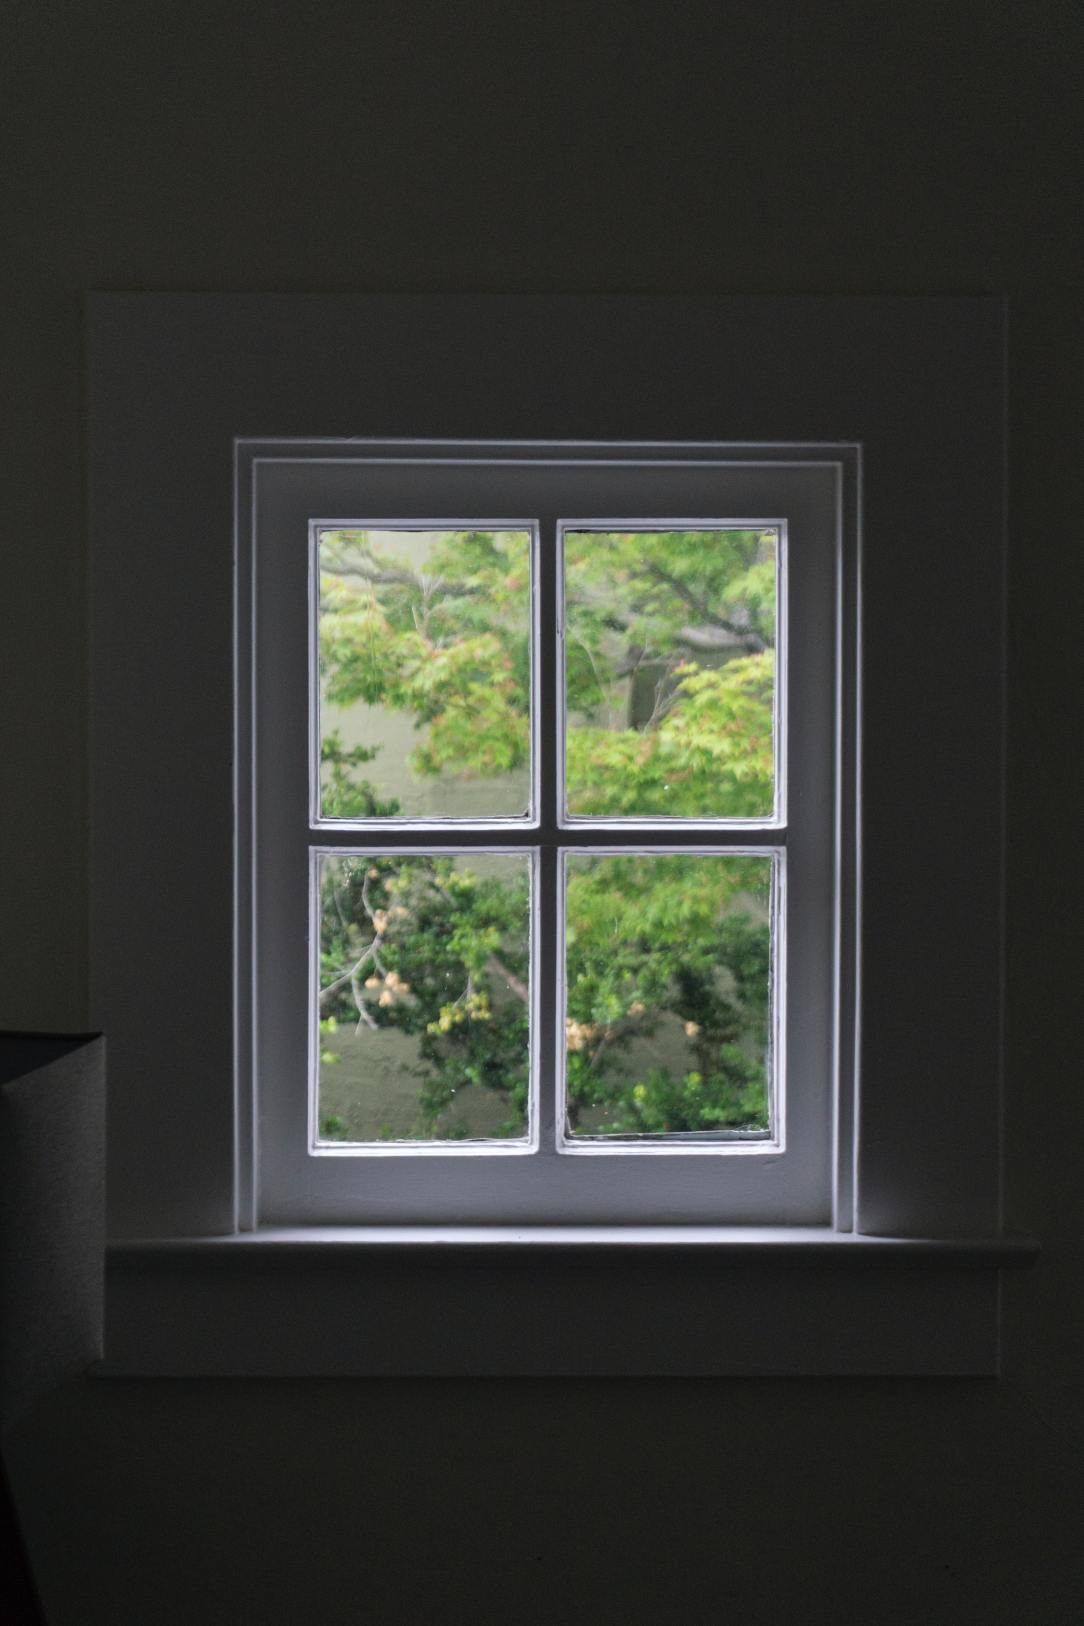 A window that shows a view of the outside where there is a tree.